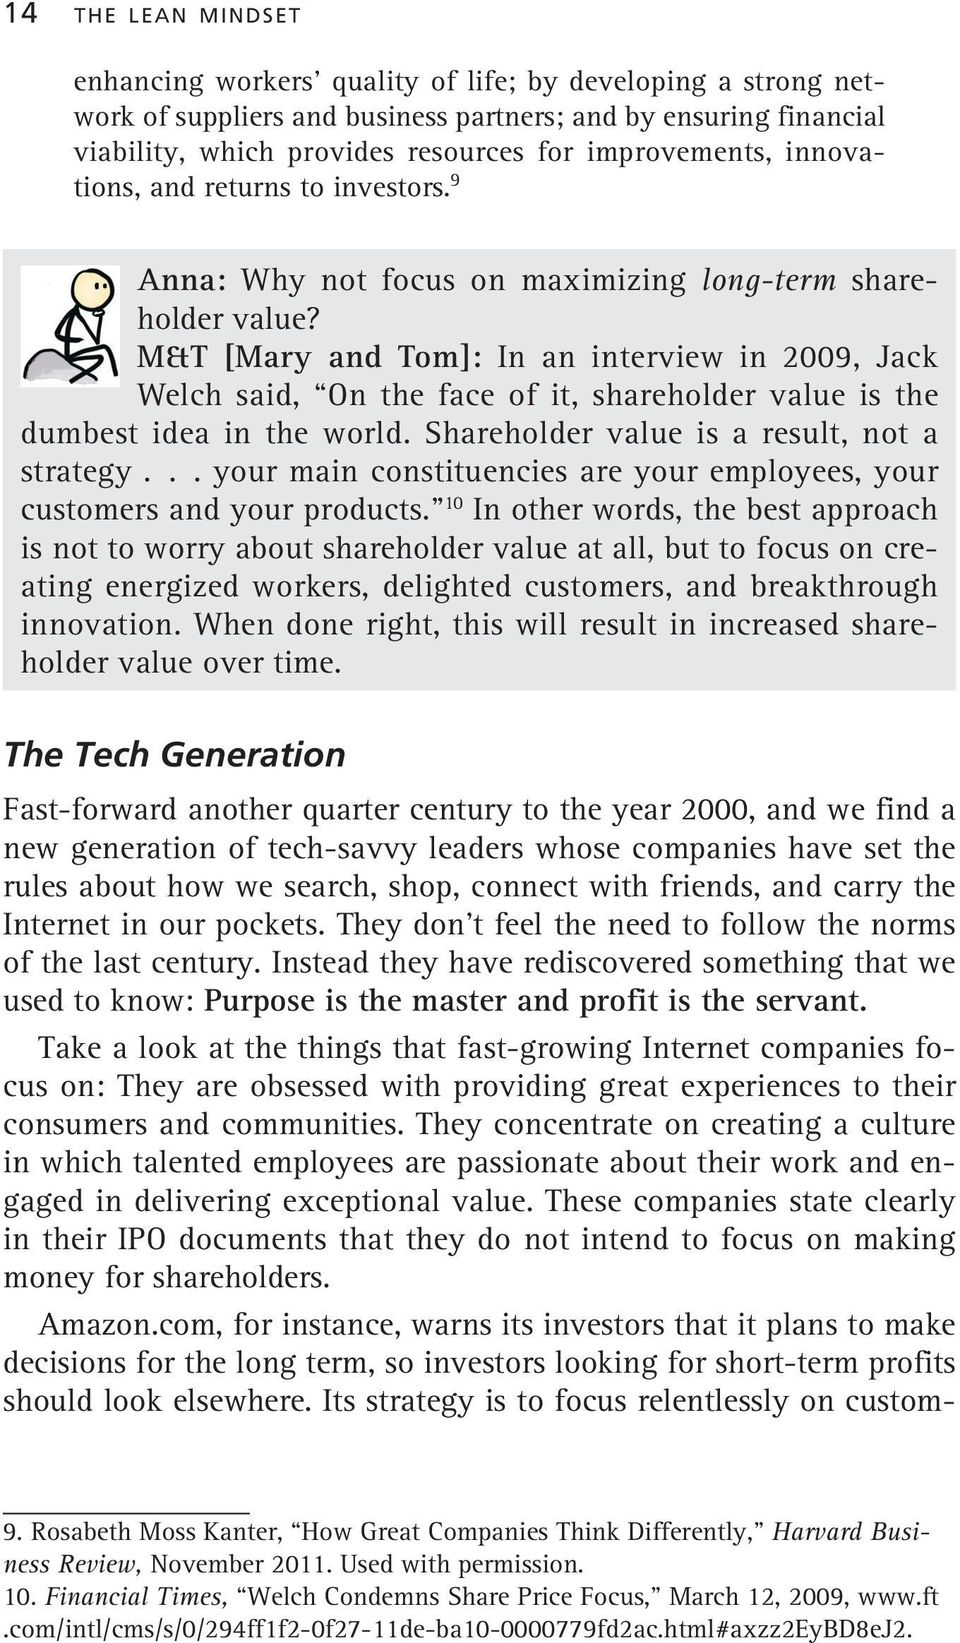 M&T [Mary and Tom]: In an interview in 2009, Jack Welch said, On the face of it, shareholder value is the dumbest idea in the world. Shareholder value is a result, not a strategy.